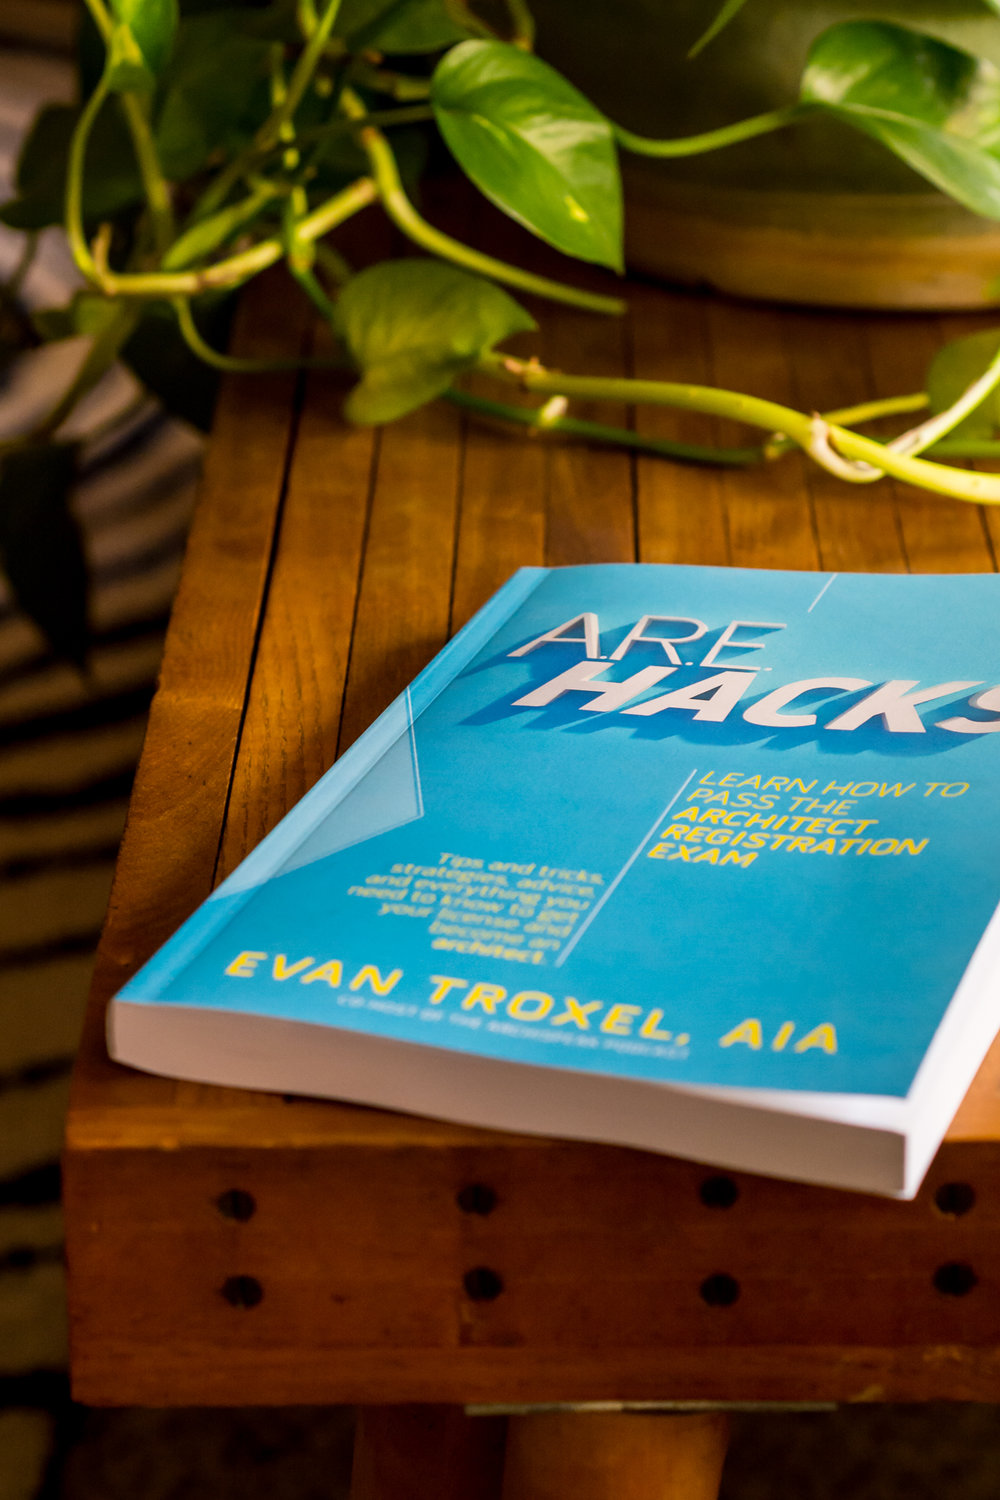 ARE Hacks  by Evan Troxel